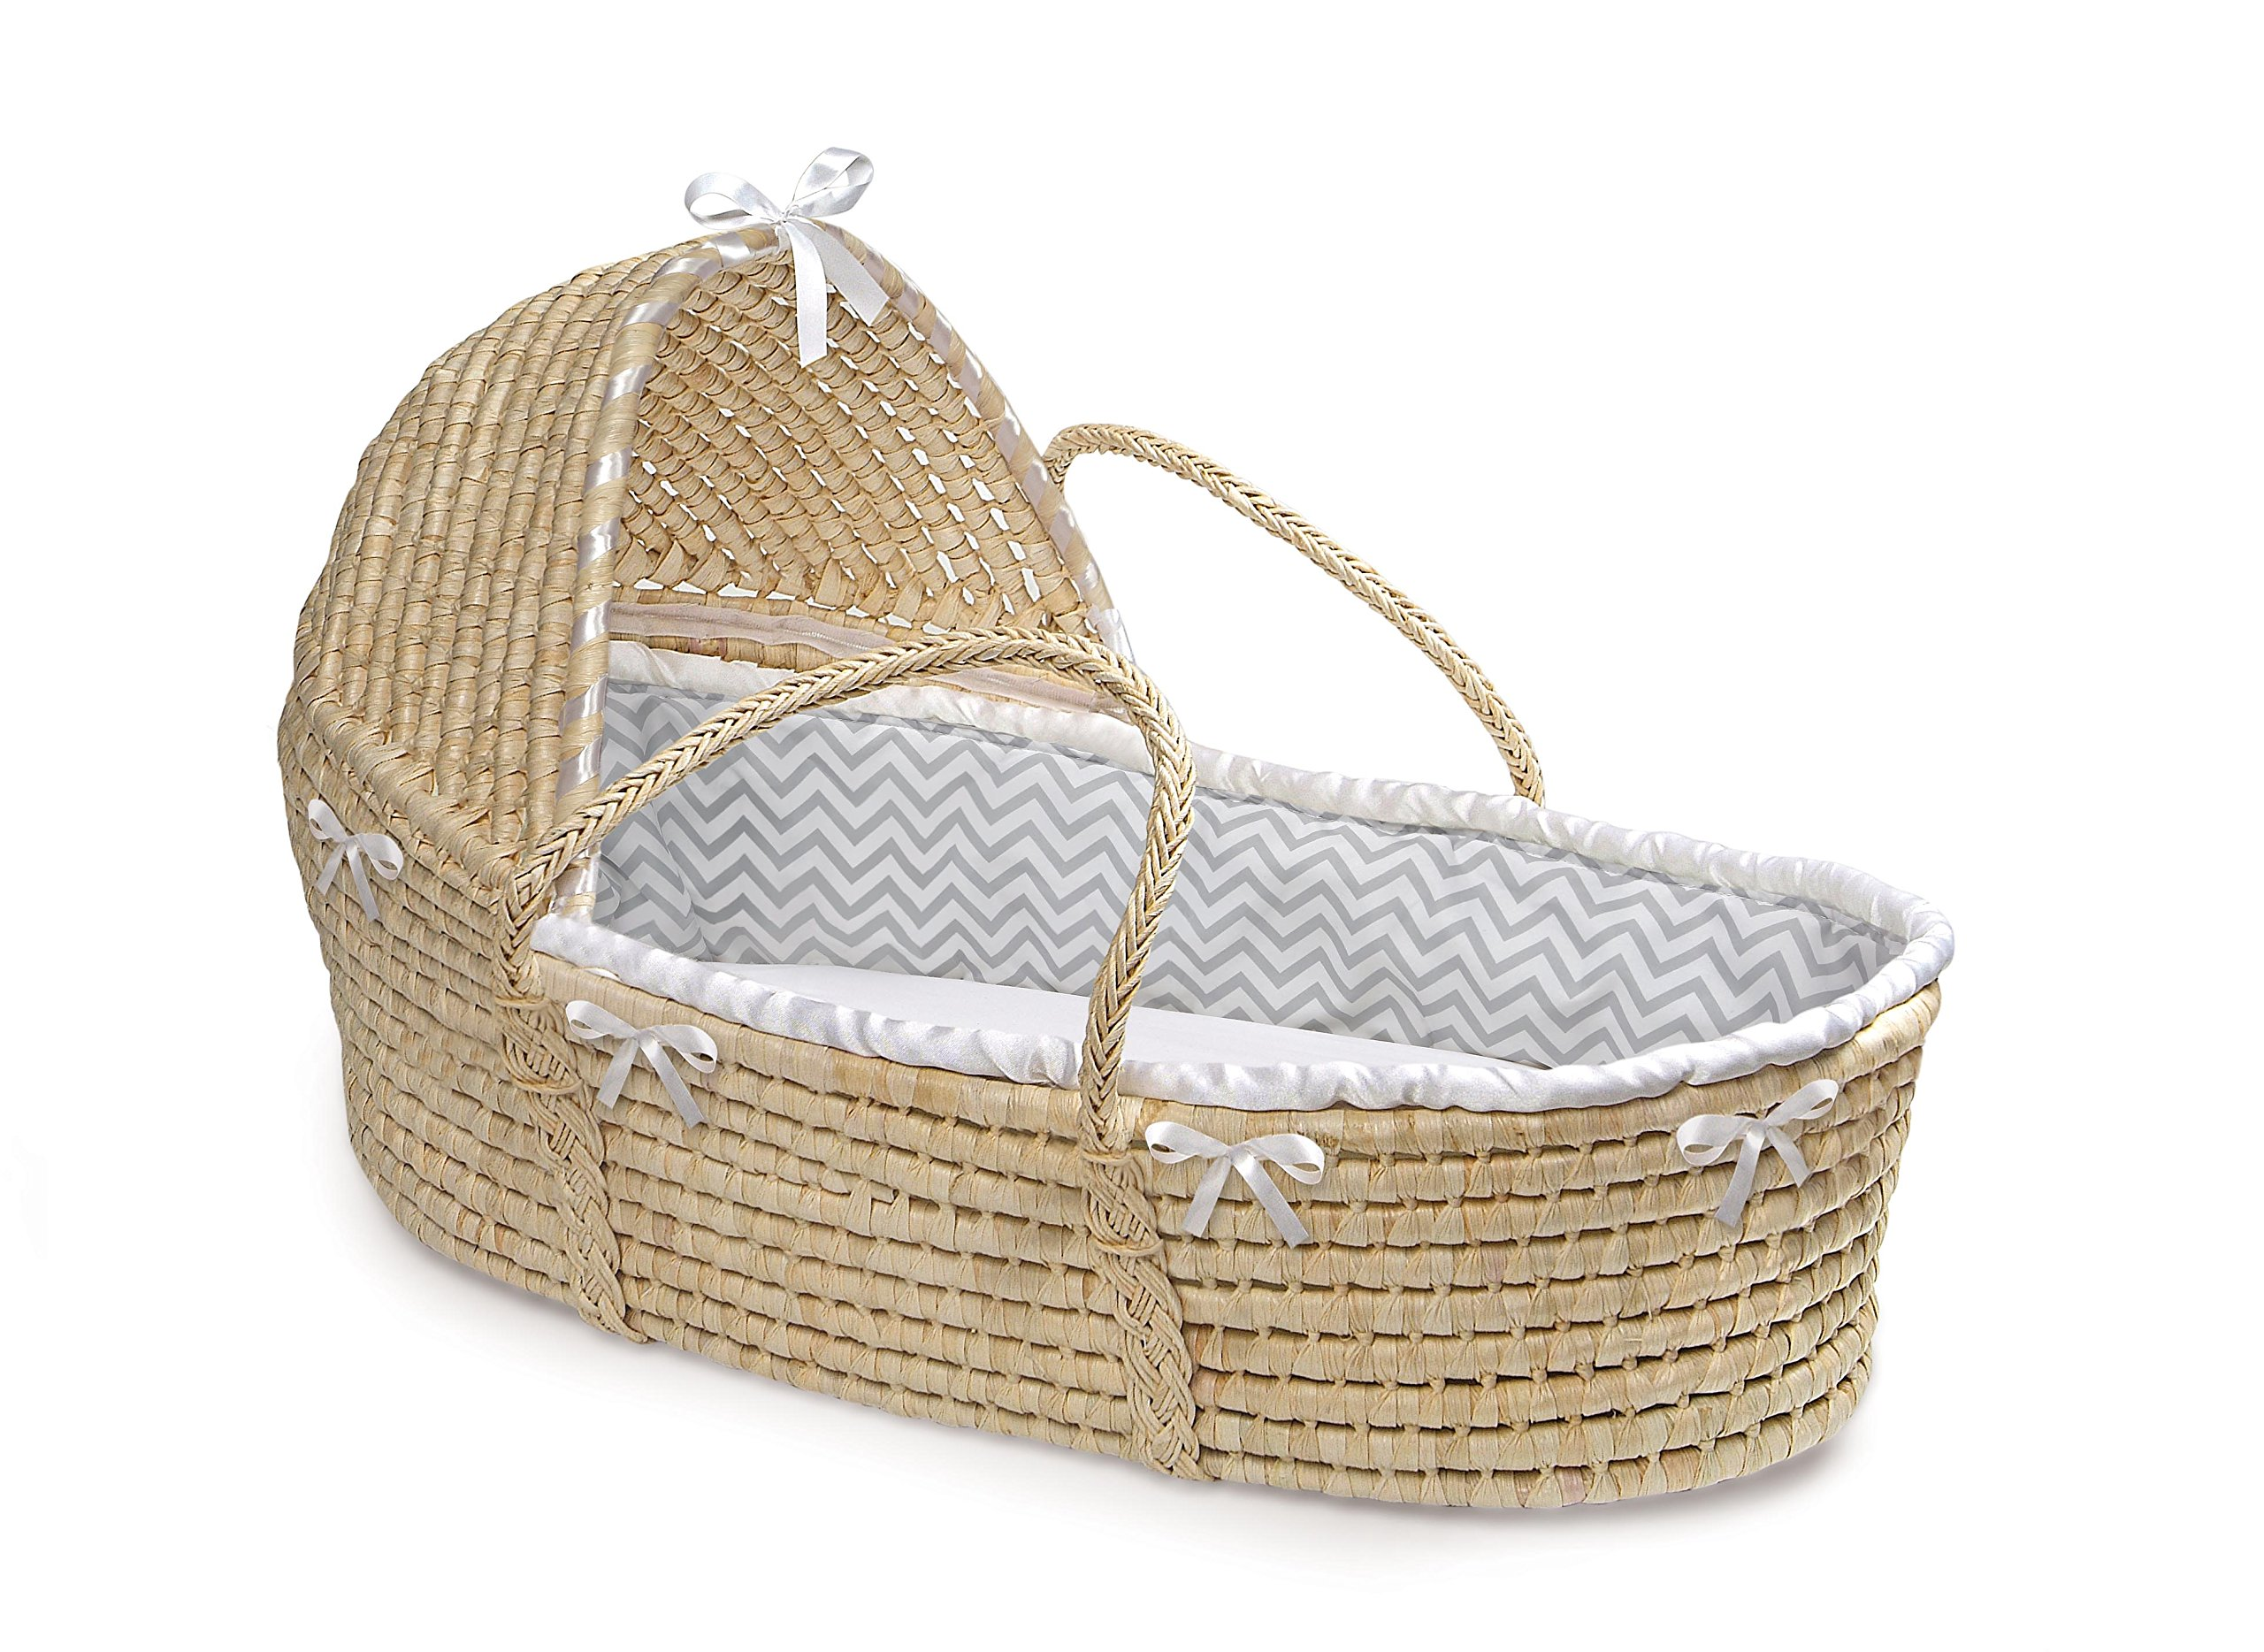 Hooded Baby Moses Basket with Liner, Sheet, and Pad by Badger Basket